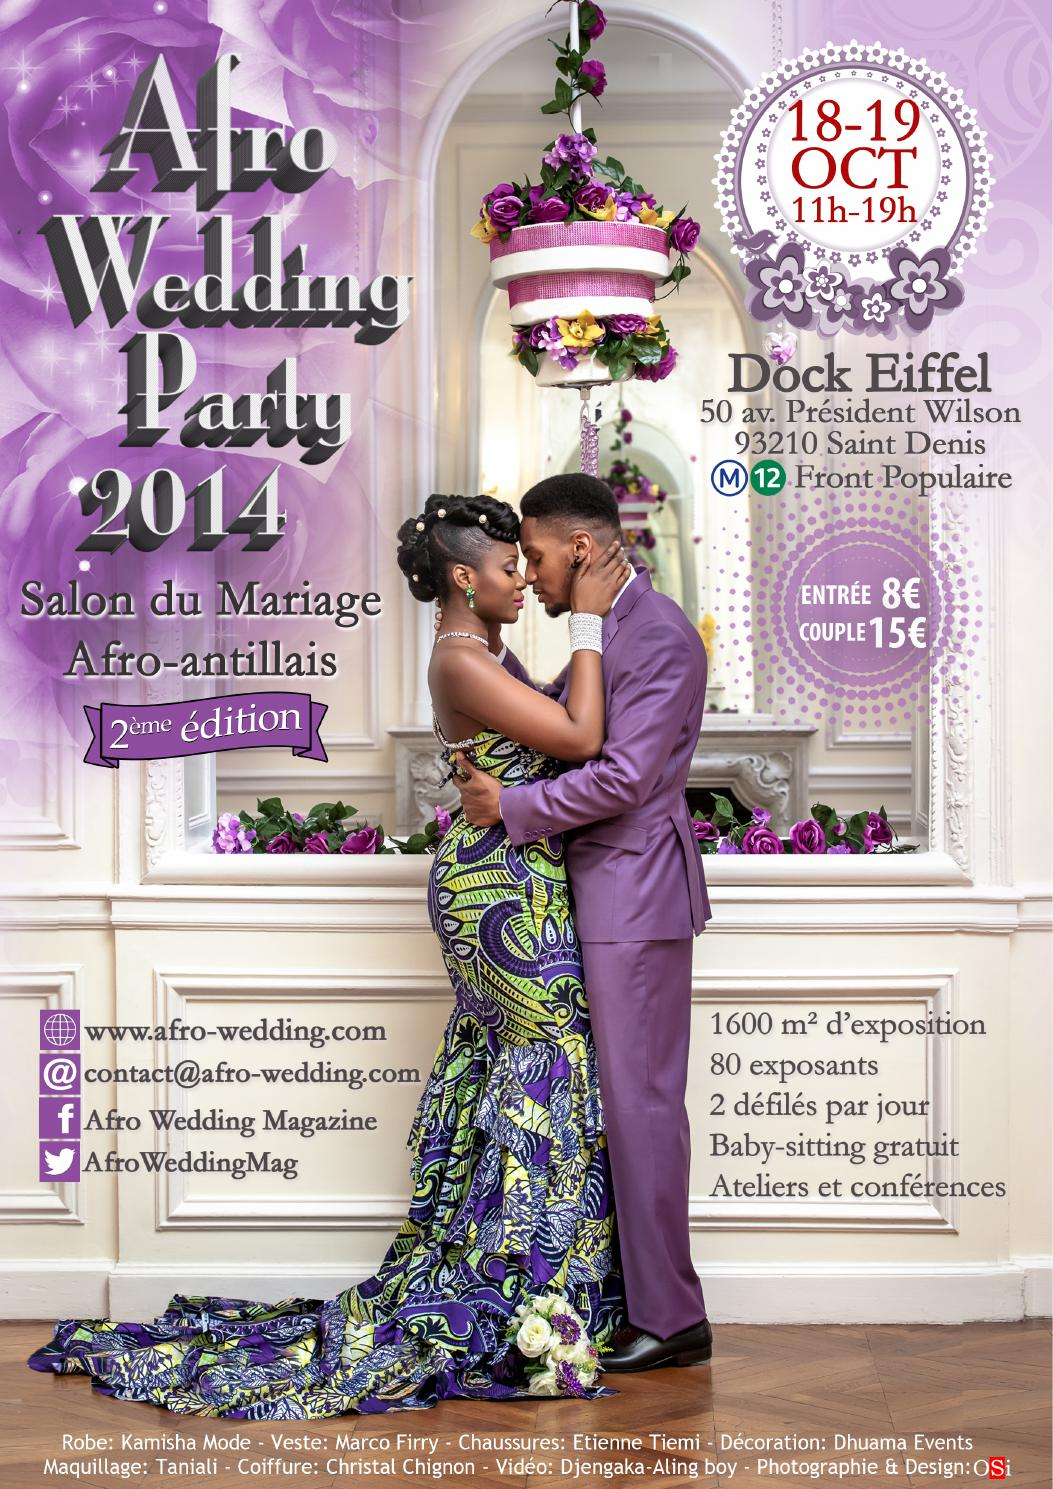 Dossier De Presse Afro Wedding Party 2014 By Afro Wedding Magazine Issuu